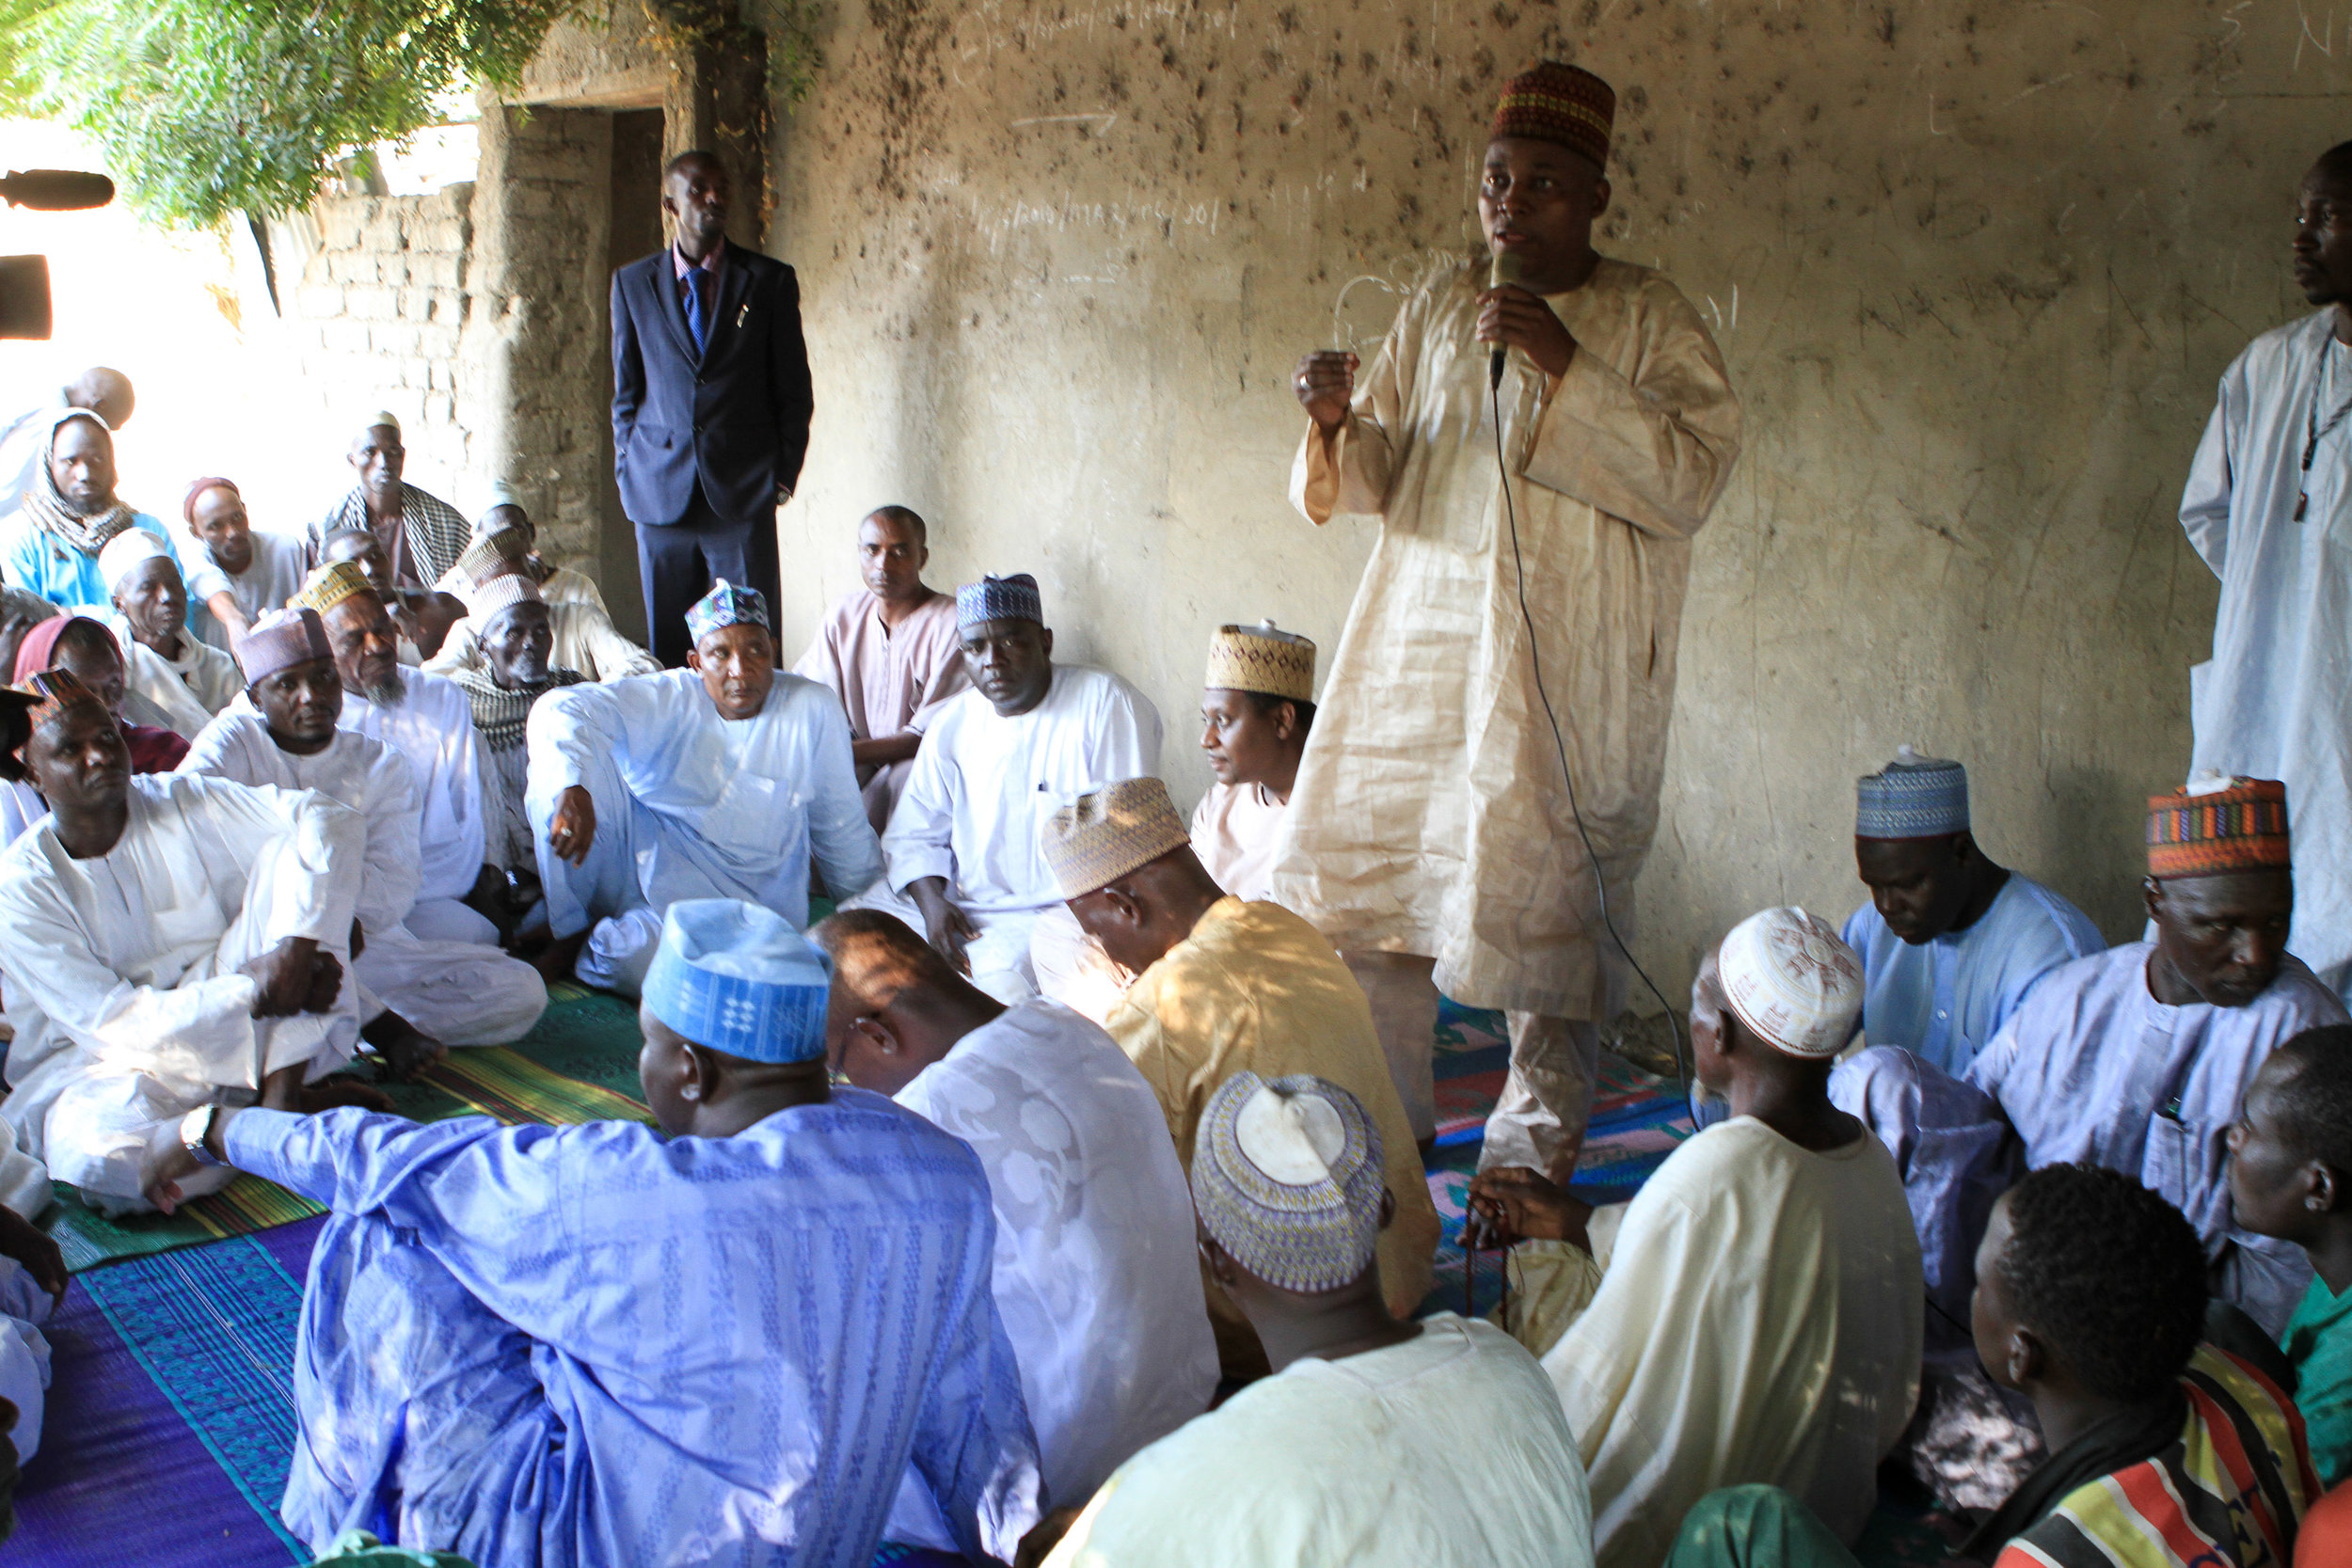 The men gathered around to discuss community needs, and t  he health minister promised them a health clinic.